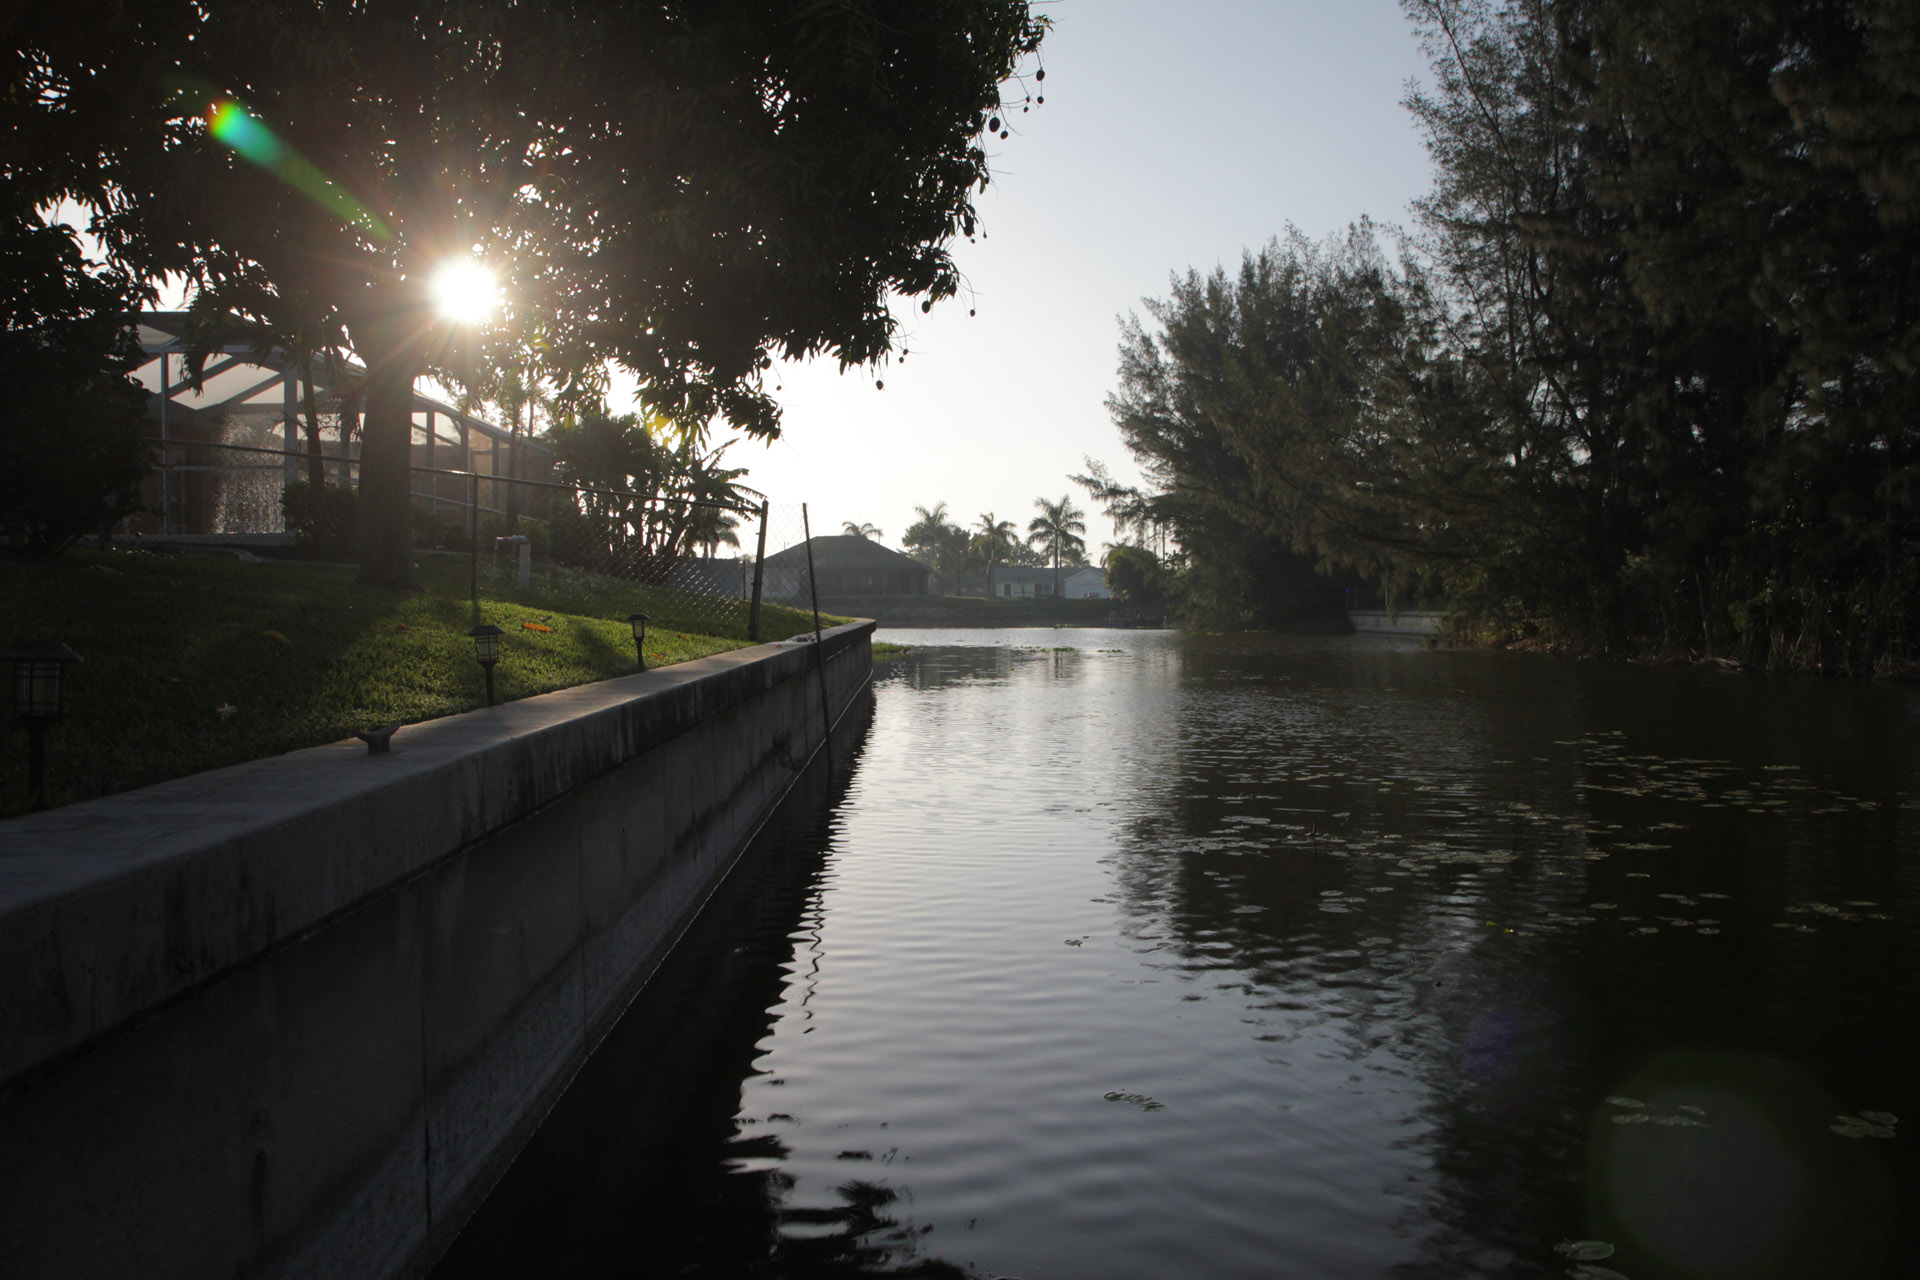 Waterway_IMG_7991